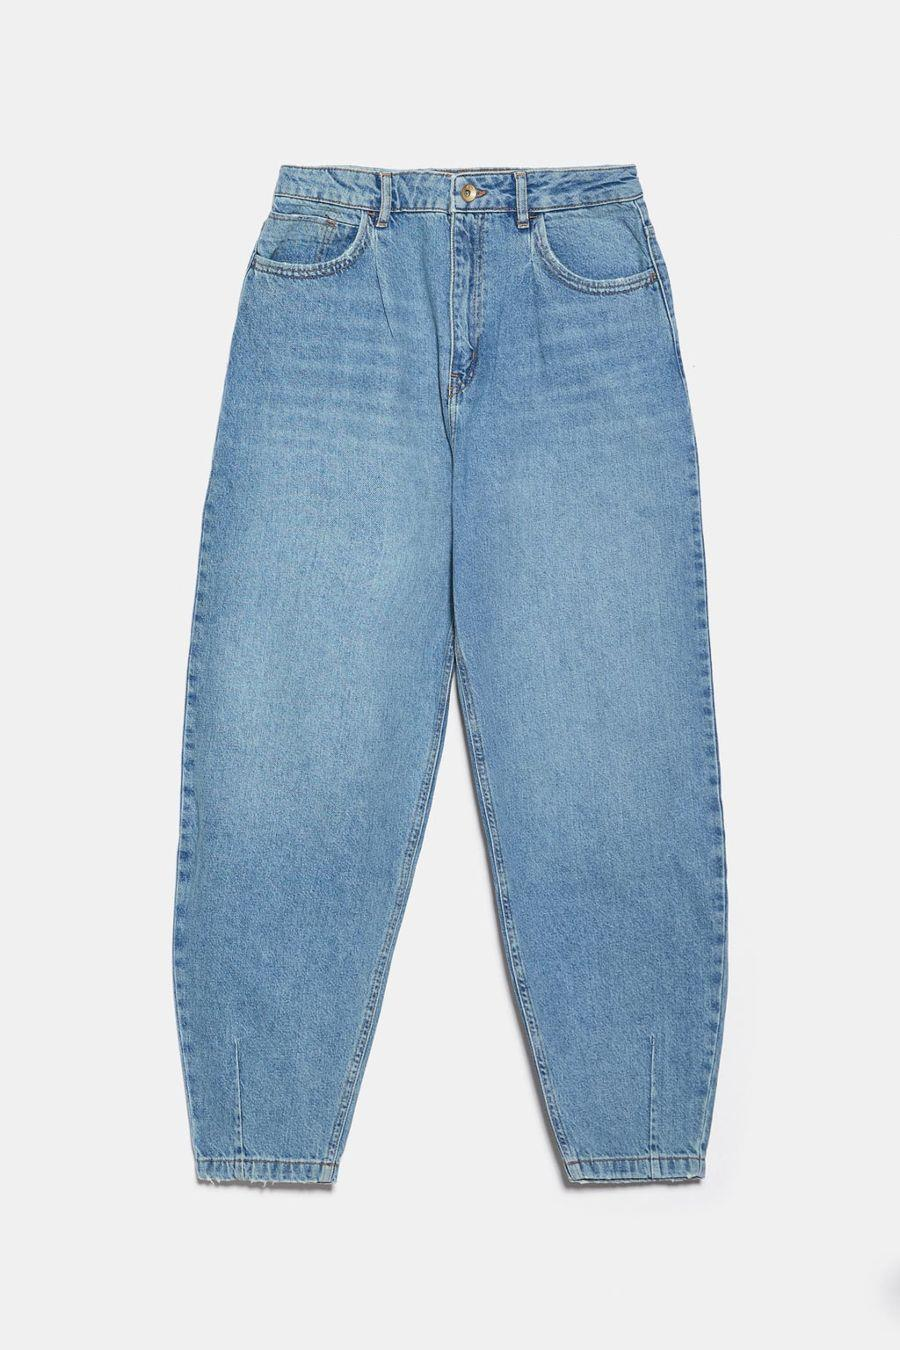 zara rebajas JEANS Z1975 AUTHENTIC SLOUCHY (1)